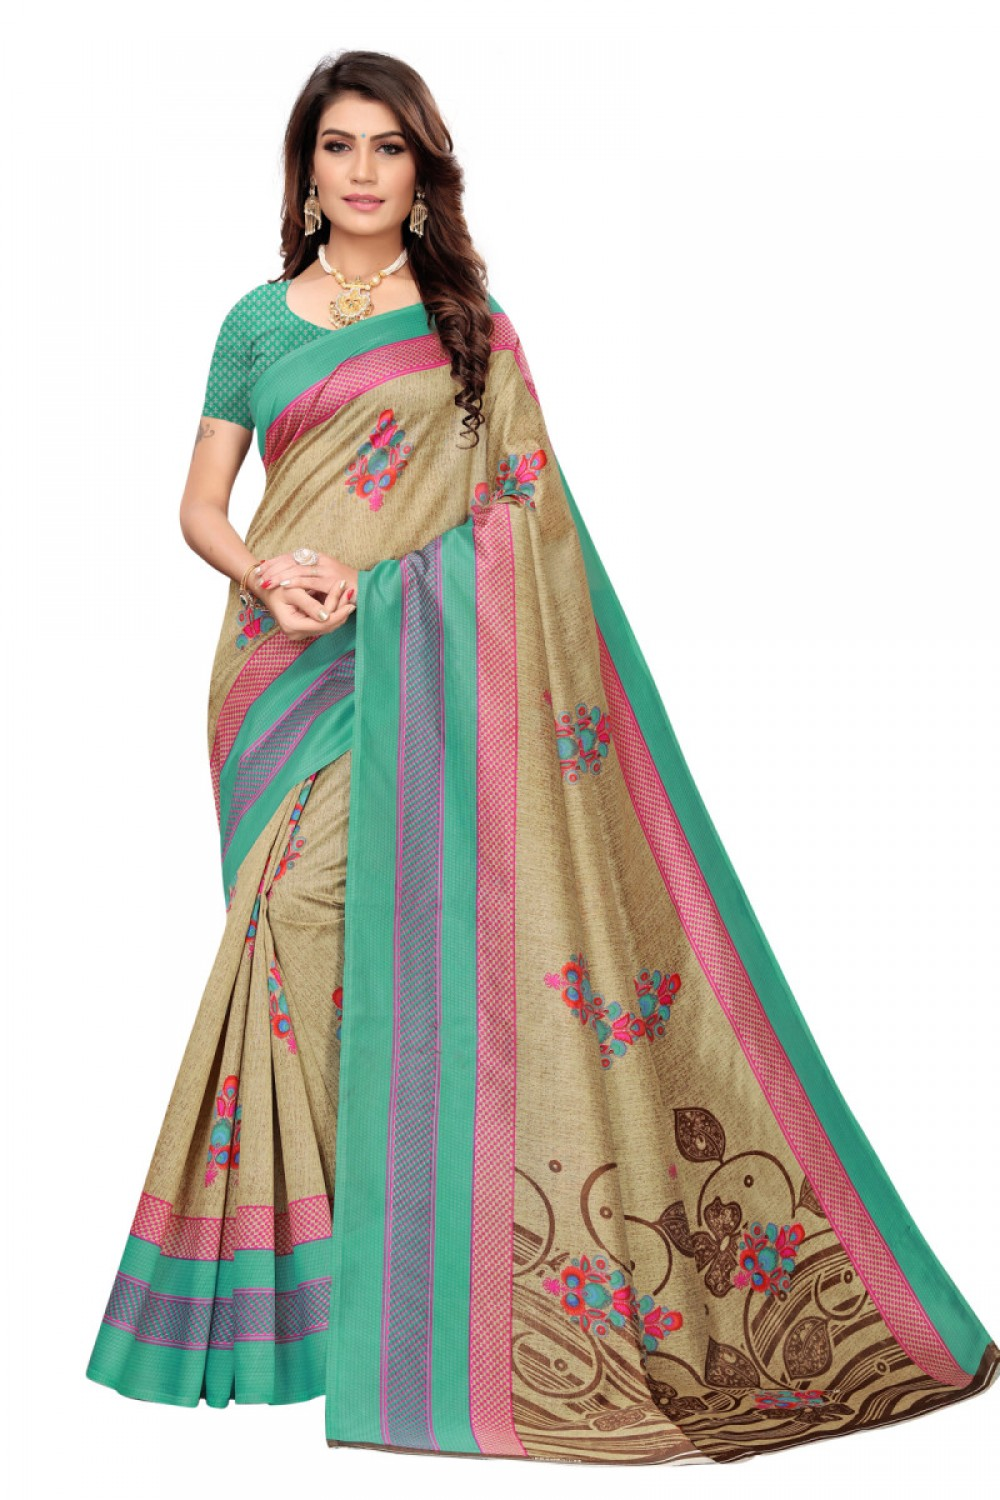 Glossy Green Colour   Brown Colour Casual wear Denting saree